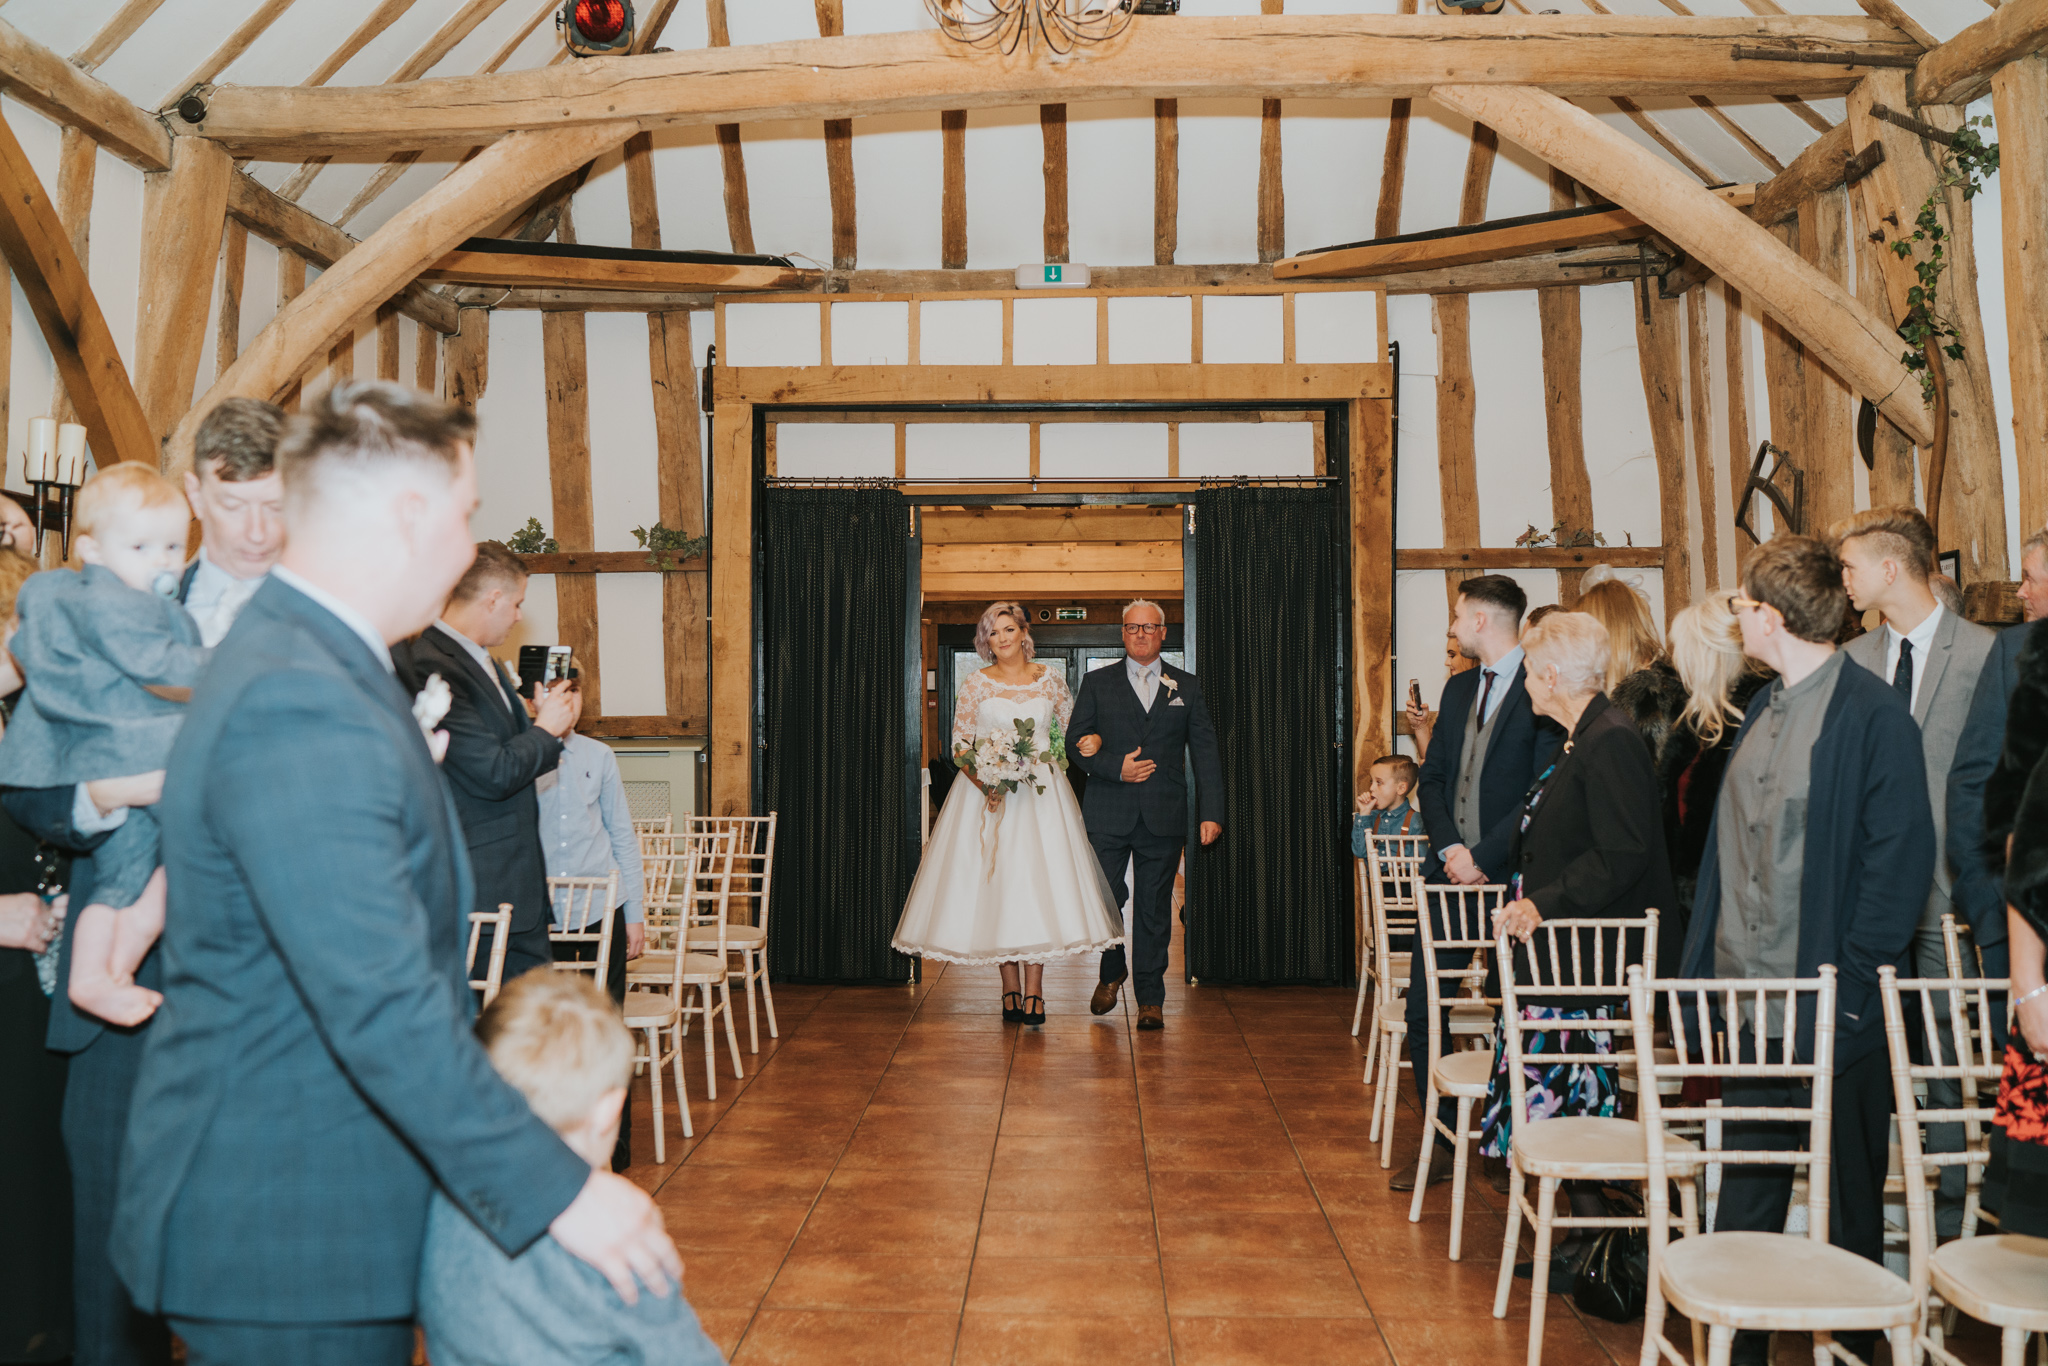 rhia-james-rustic-crabbs-barn-vintage-50s-retro-wedding-grace-elizabeth-colchester-essex-alternative-relaxed-wedding-family-photography-devon-suffolk-norfolk-essex (68 of 138).jpg